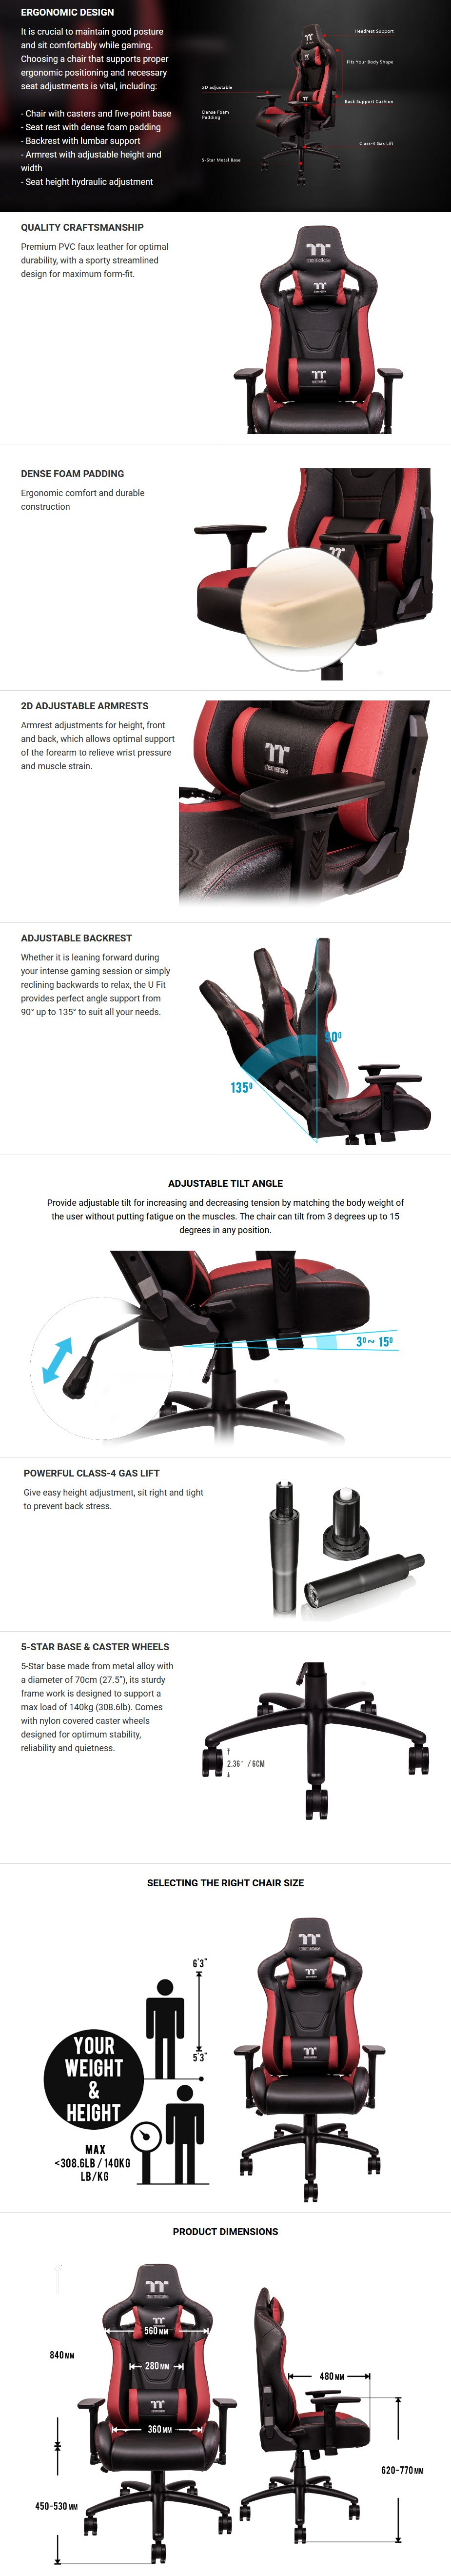 Thermaltake Gaming U Fit Office/Gaming Chair - Black/Red - Overview 1